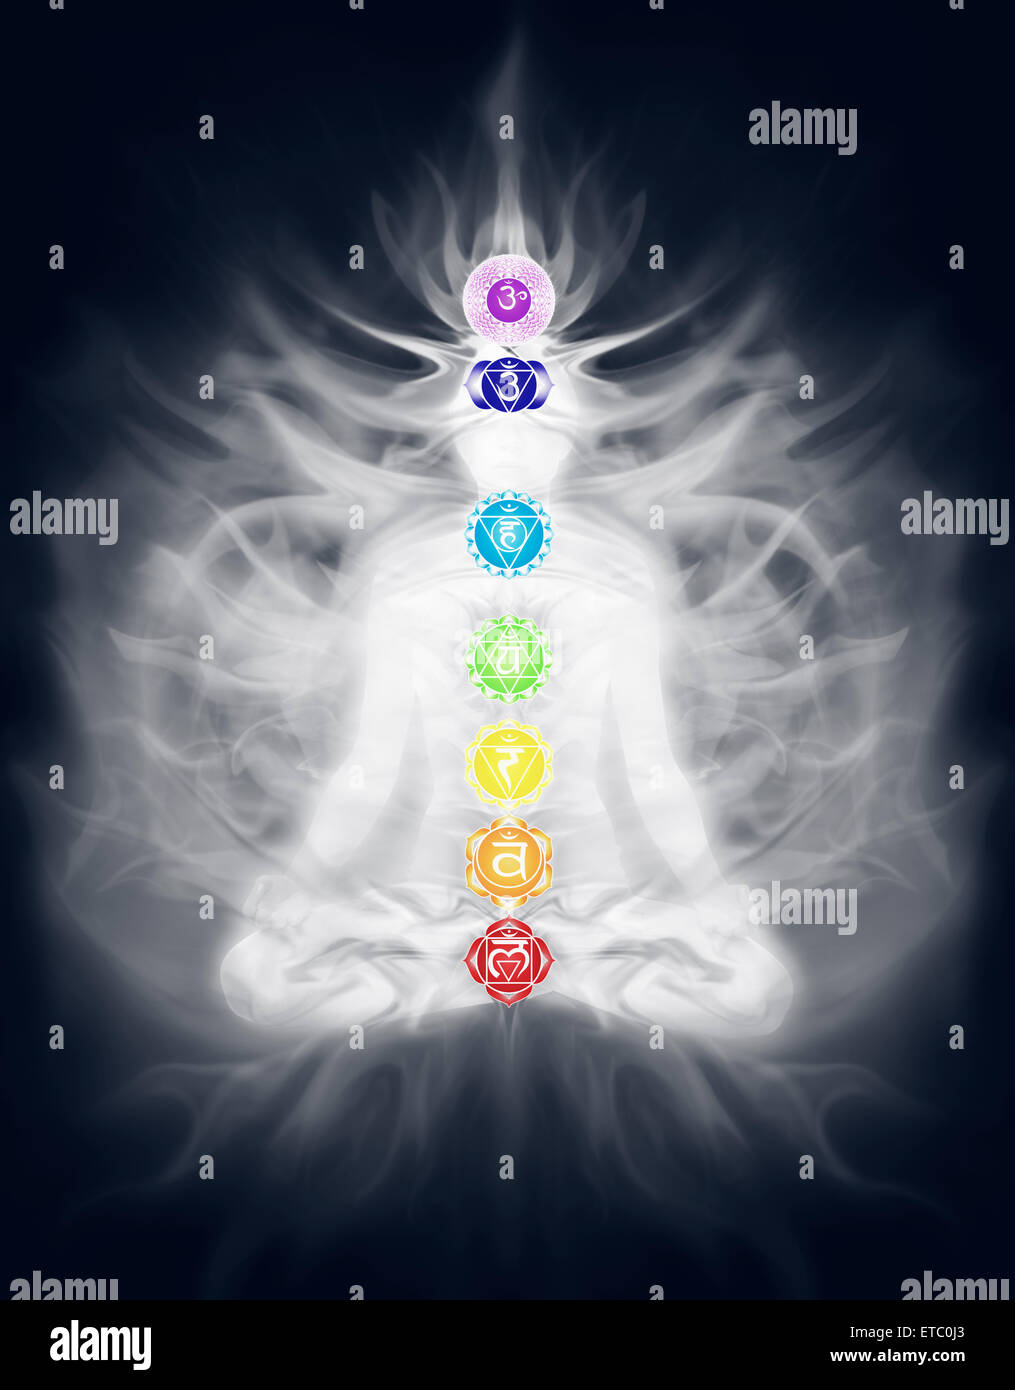 Silhouette of a woman meditating in lotus pose with Chakra symbols and energy flow overlayed on her body - Stock Image